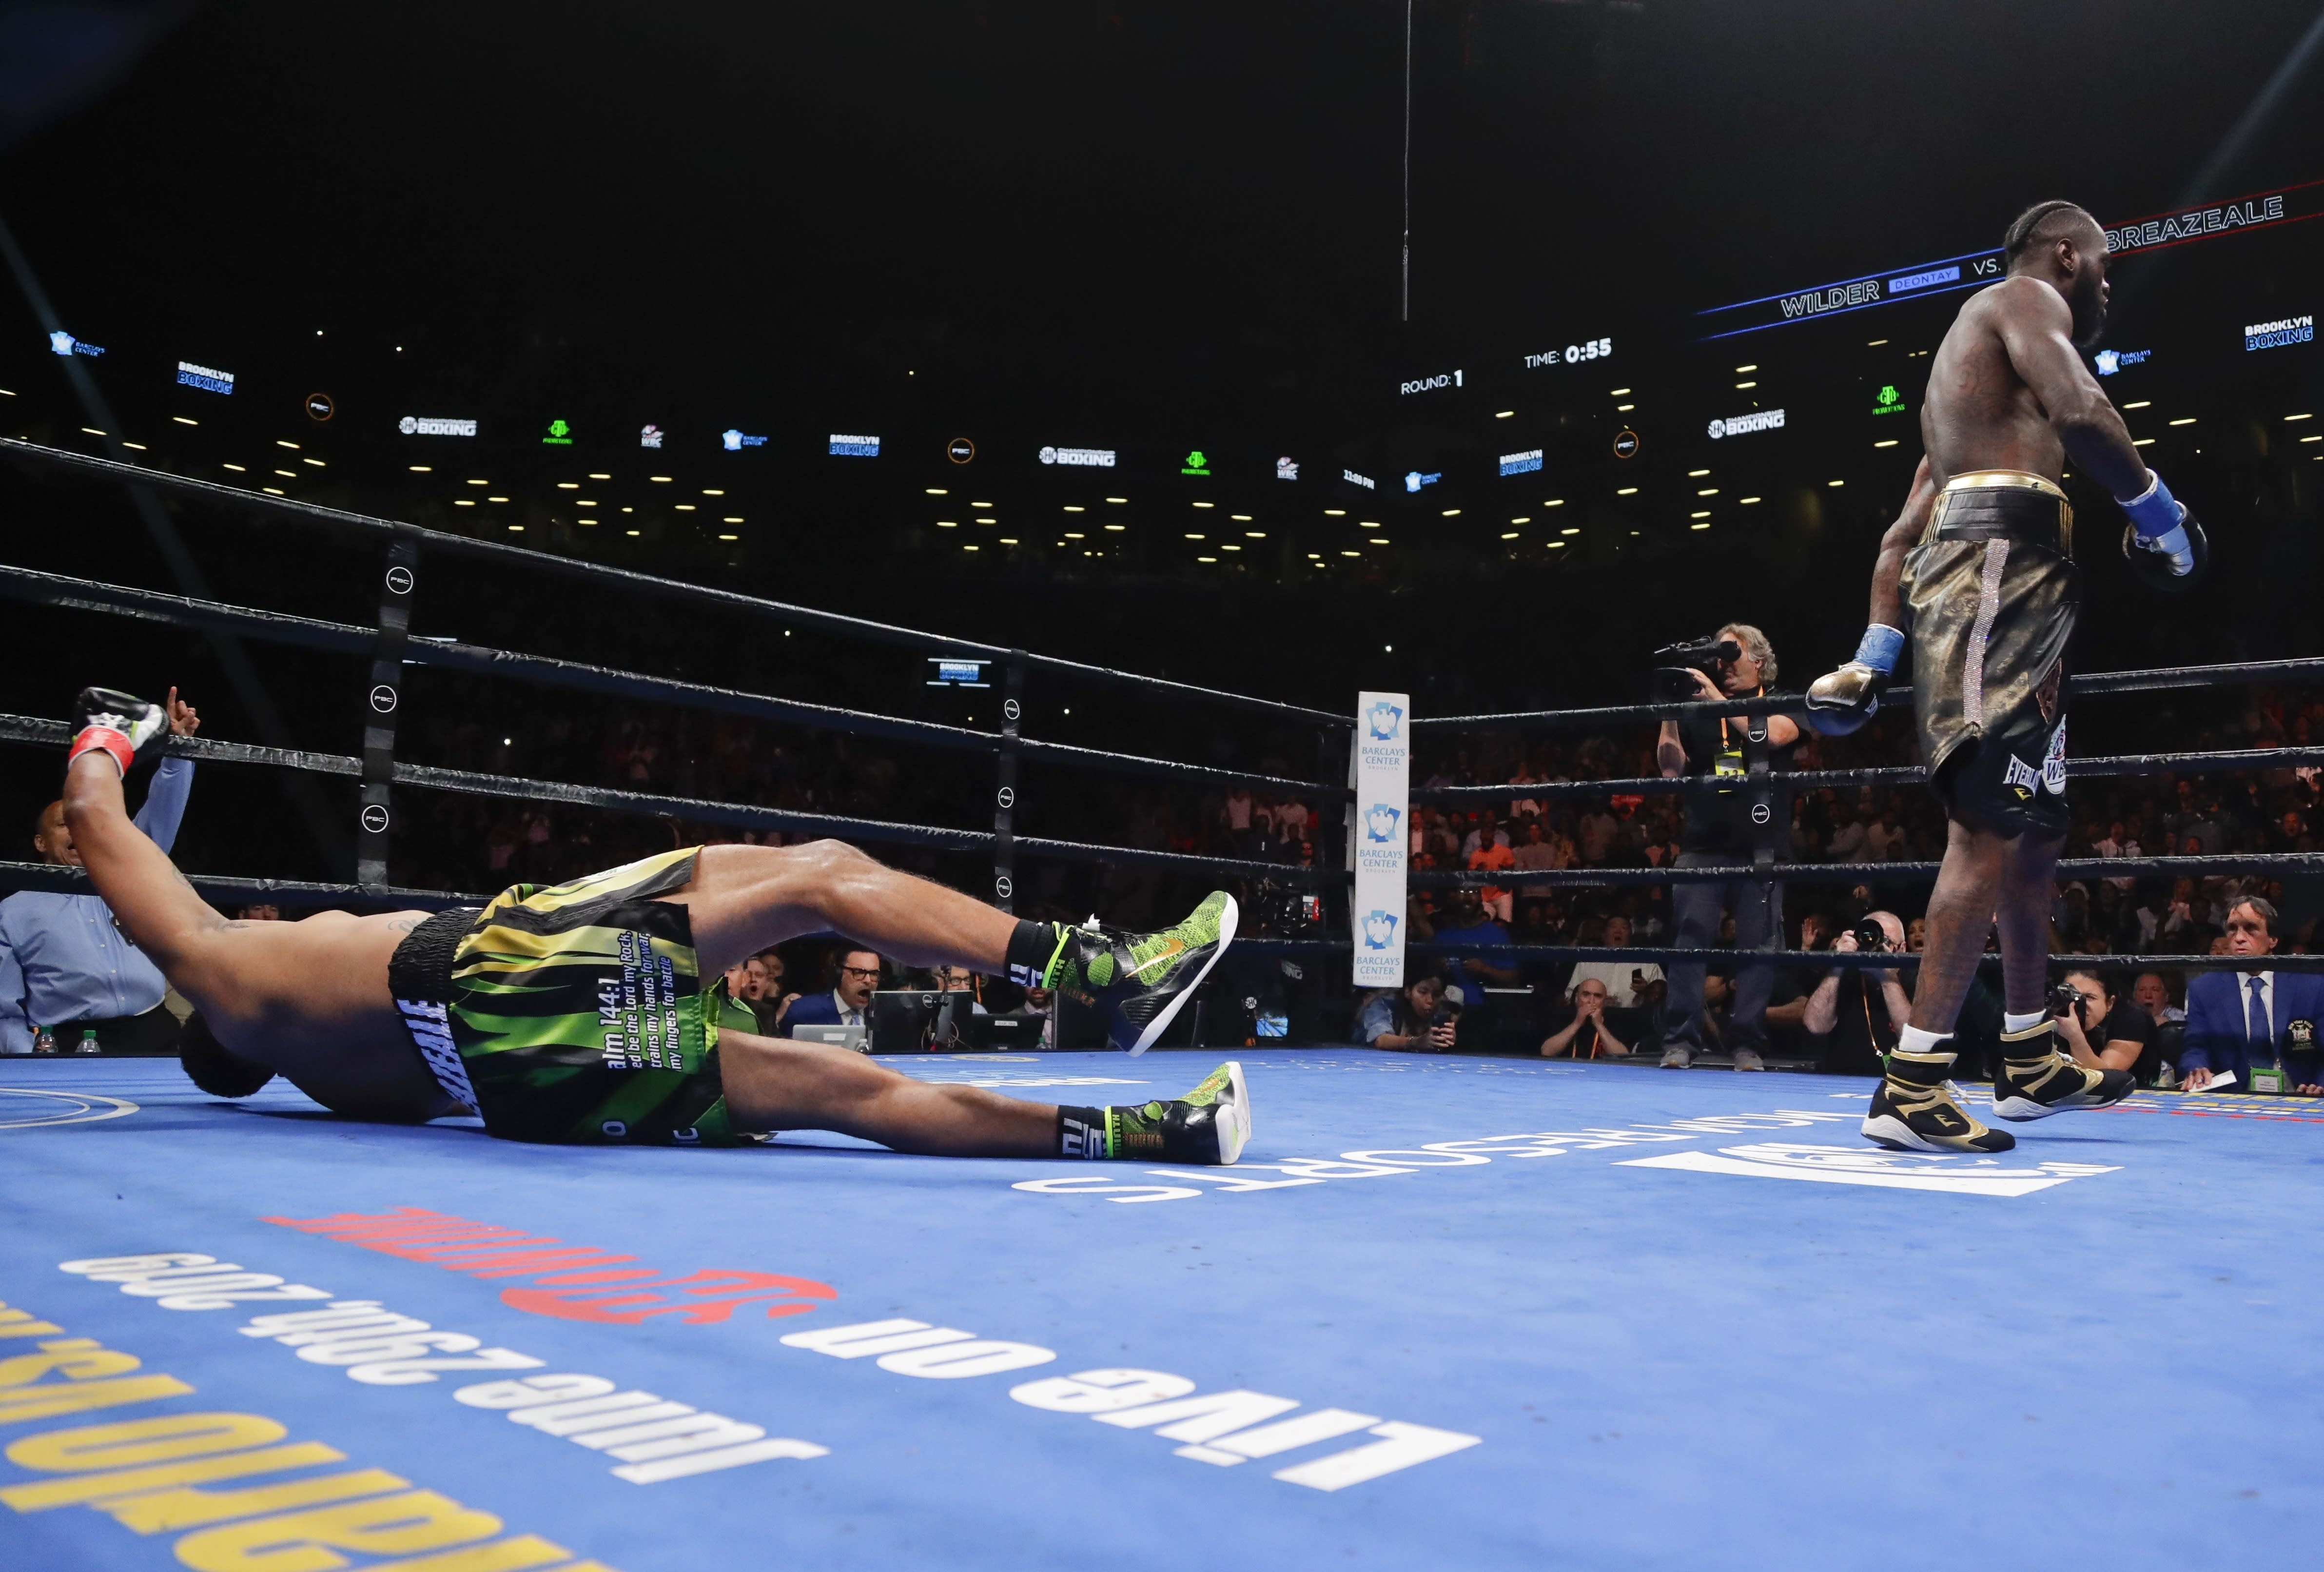 Deontay Wilder, right, knocks down Dominic Breazeale during the first round of the WBC heavyweight championship boxing match Saturday, May 18, 2019, in New York. Wilder won in the first round. (AP Photo/Frank Franklin II)